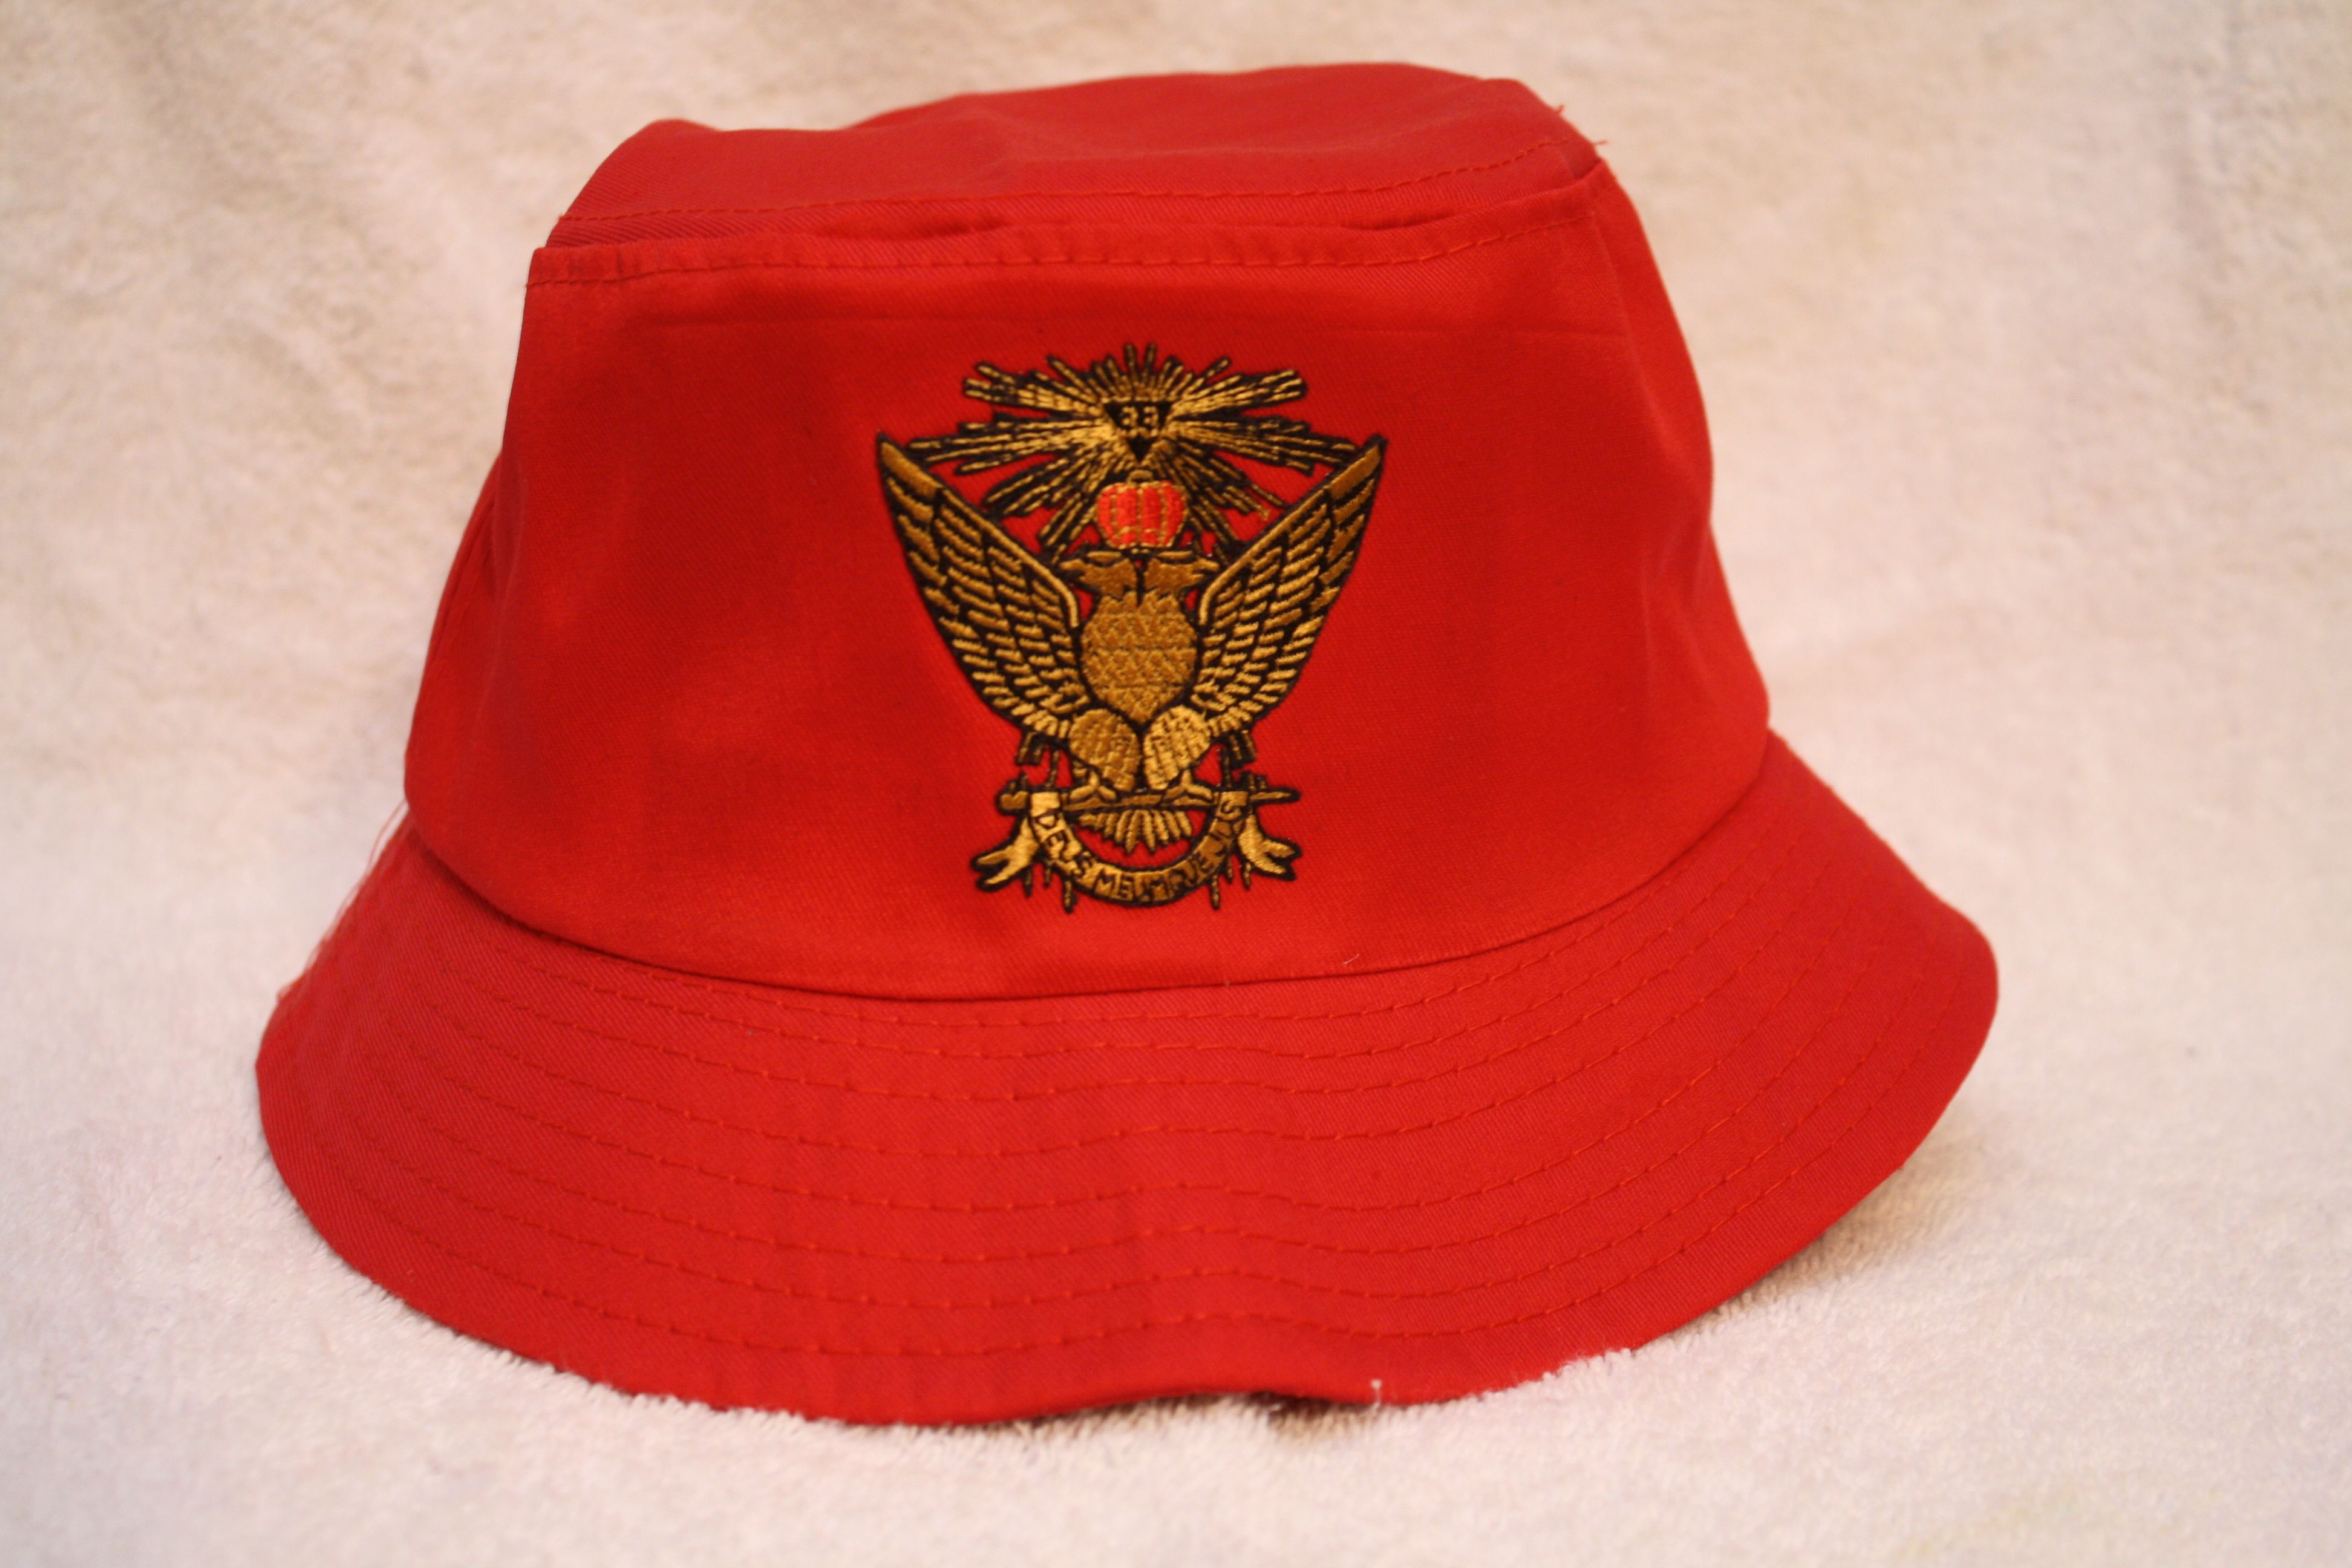 32nd & 33rd Degree Consistory Mason Wings Up bucket floppy hat with logo emblem